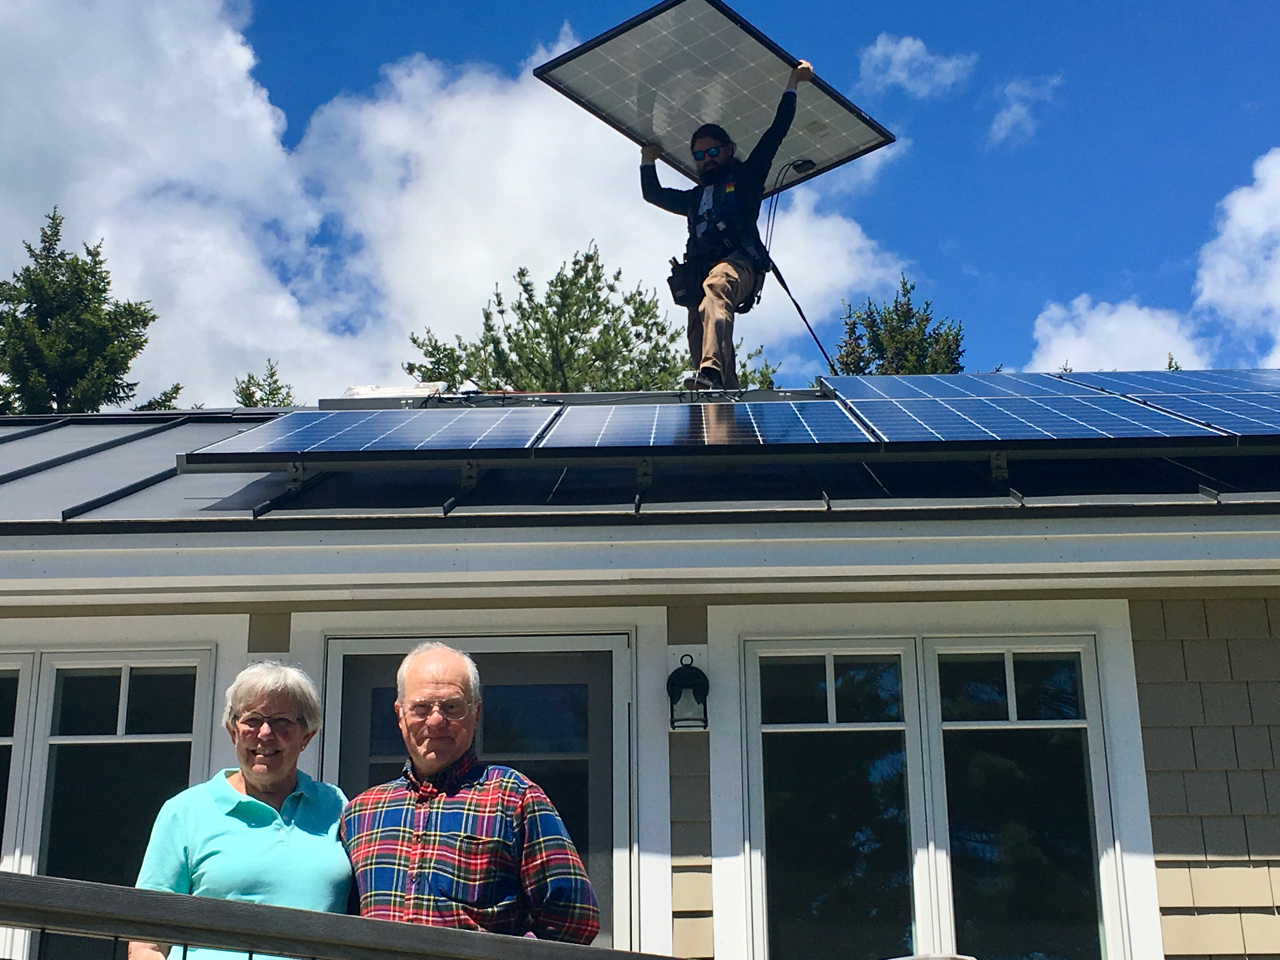 Sample System 6 kW - Sample system size: 6 kilowattsCurrent electric bill ~ $95/monthInstallation cost: $16,140Federal tax credit: $4,842System cost: $11,298Potential Solarize MDI savings: $1,500 if we achieve our goalTier 5 Cost: $9,798 - once Solarize MDI hits 200kW total25 year warranty and 30+ year life expectancyLeft: As part of Solarize MDI, Leza and Jim Colquhoun were thrilled to see their solar panels installed on their Southwest Harbor home that was once Leza's parent's cottage. The exciting part was when it immediately produced over 5,000 kW of electricity and the meter ran backward.